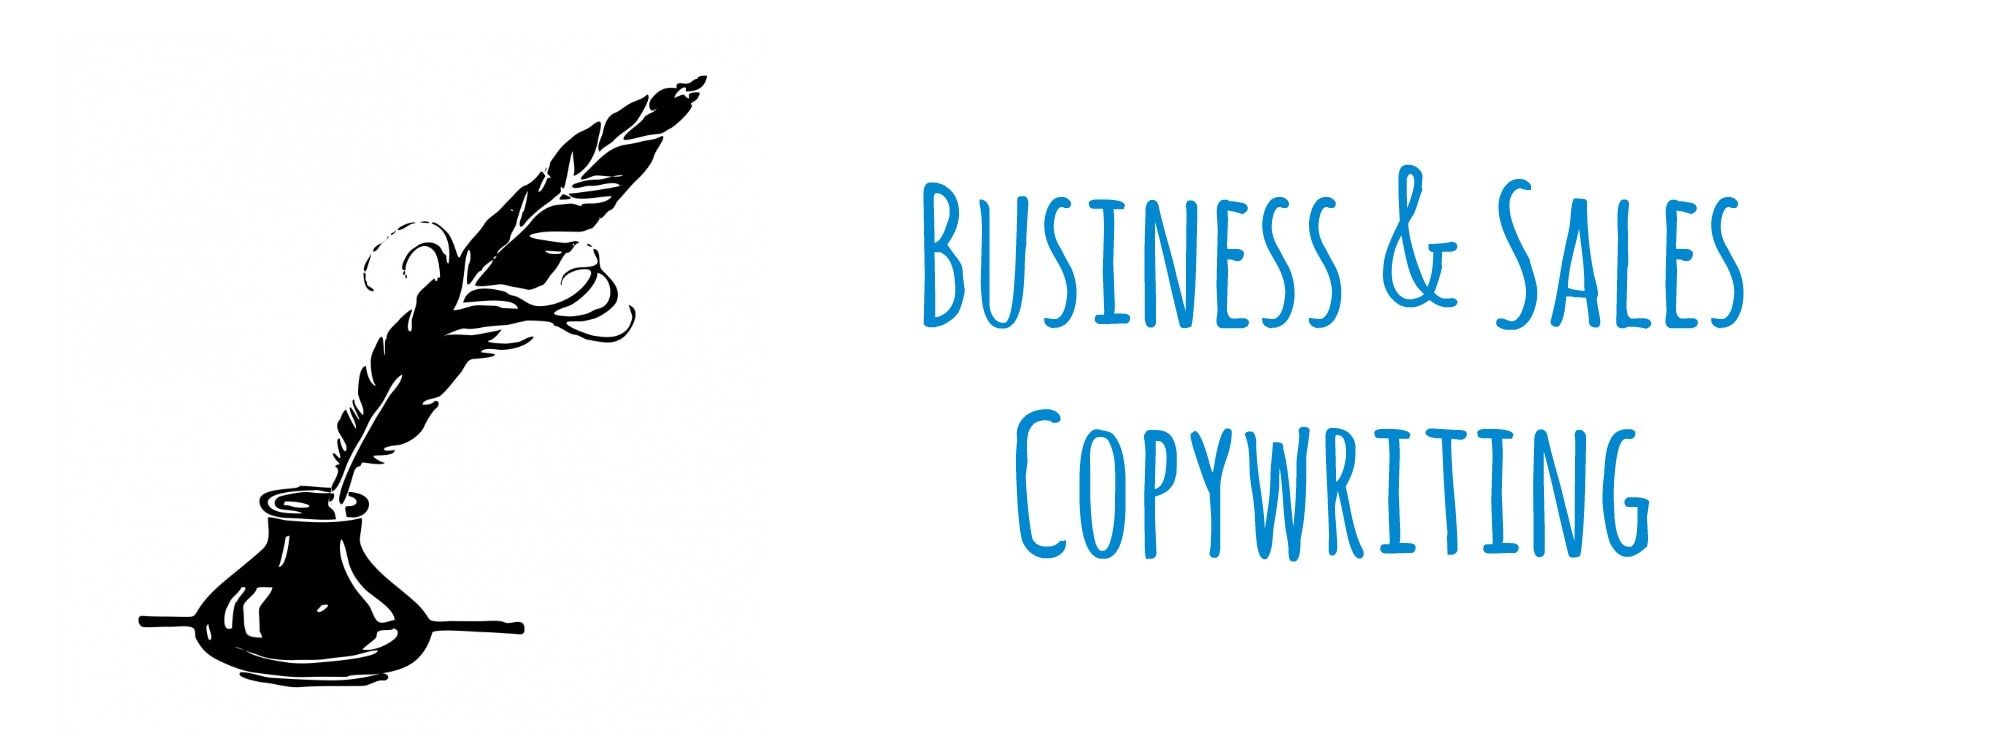 Copywriting, Marketing Communications, SEO Services, Script Writing